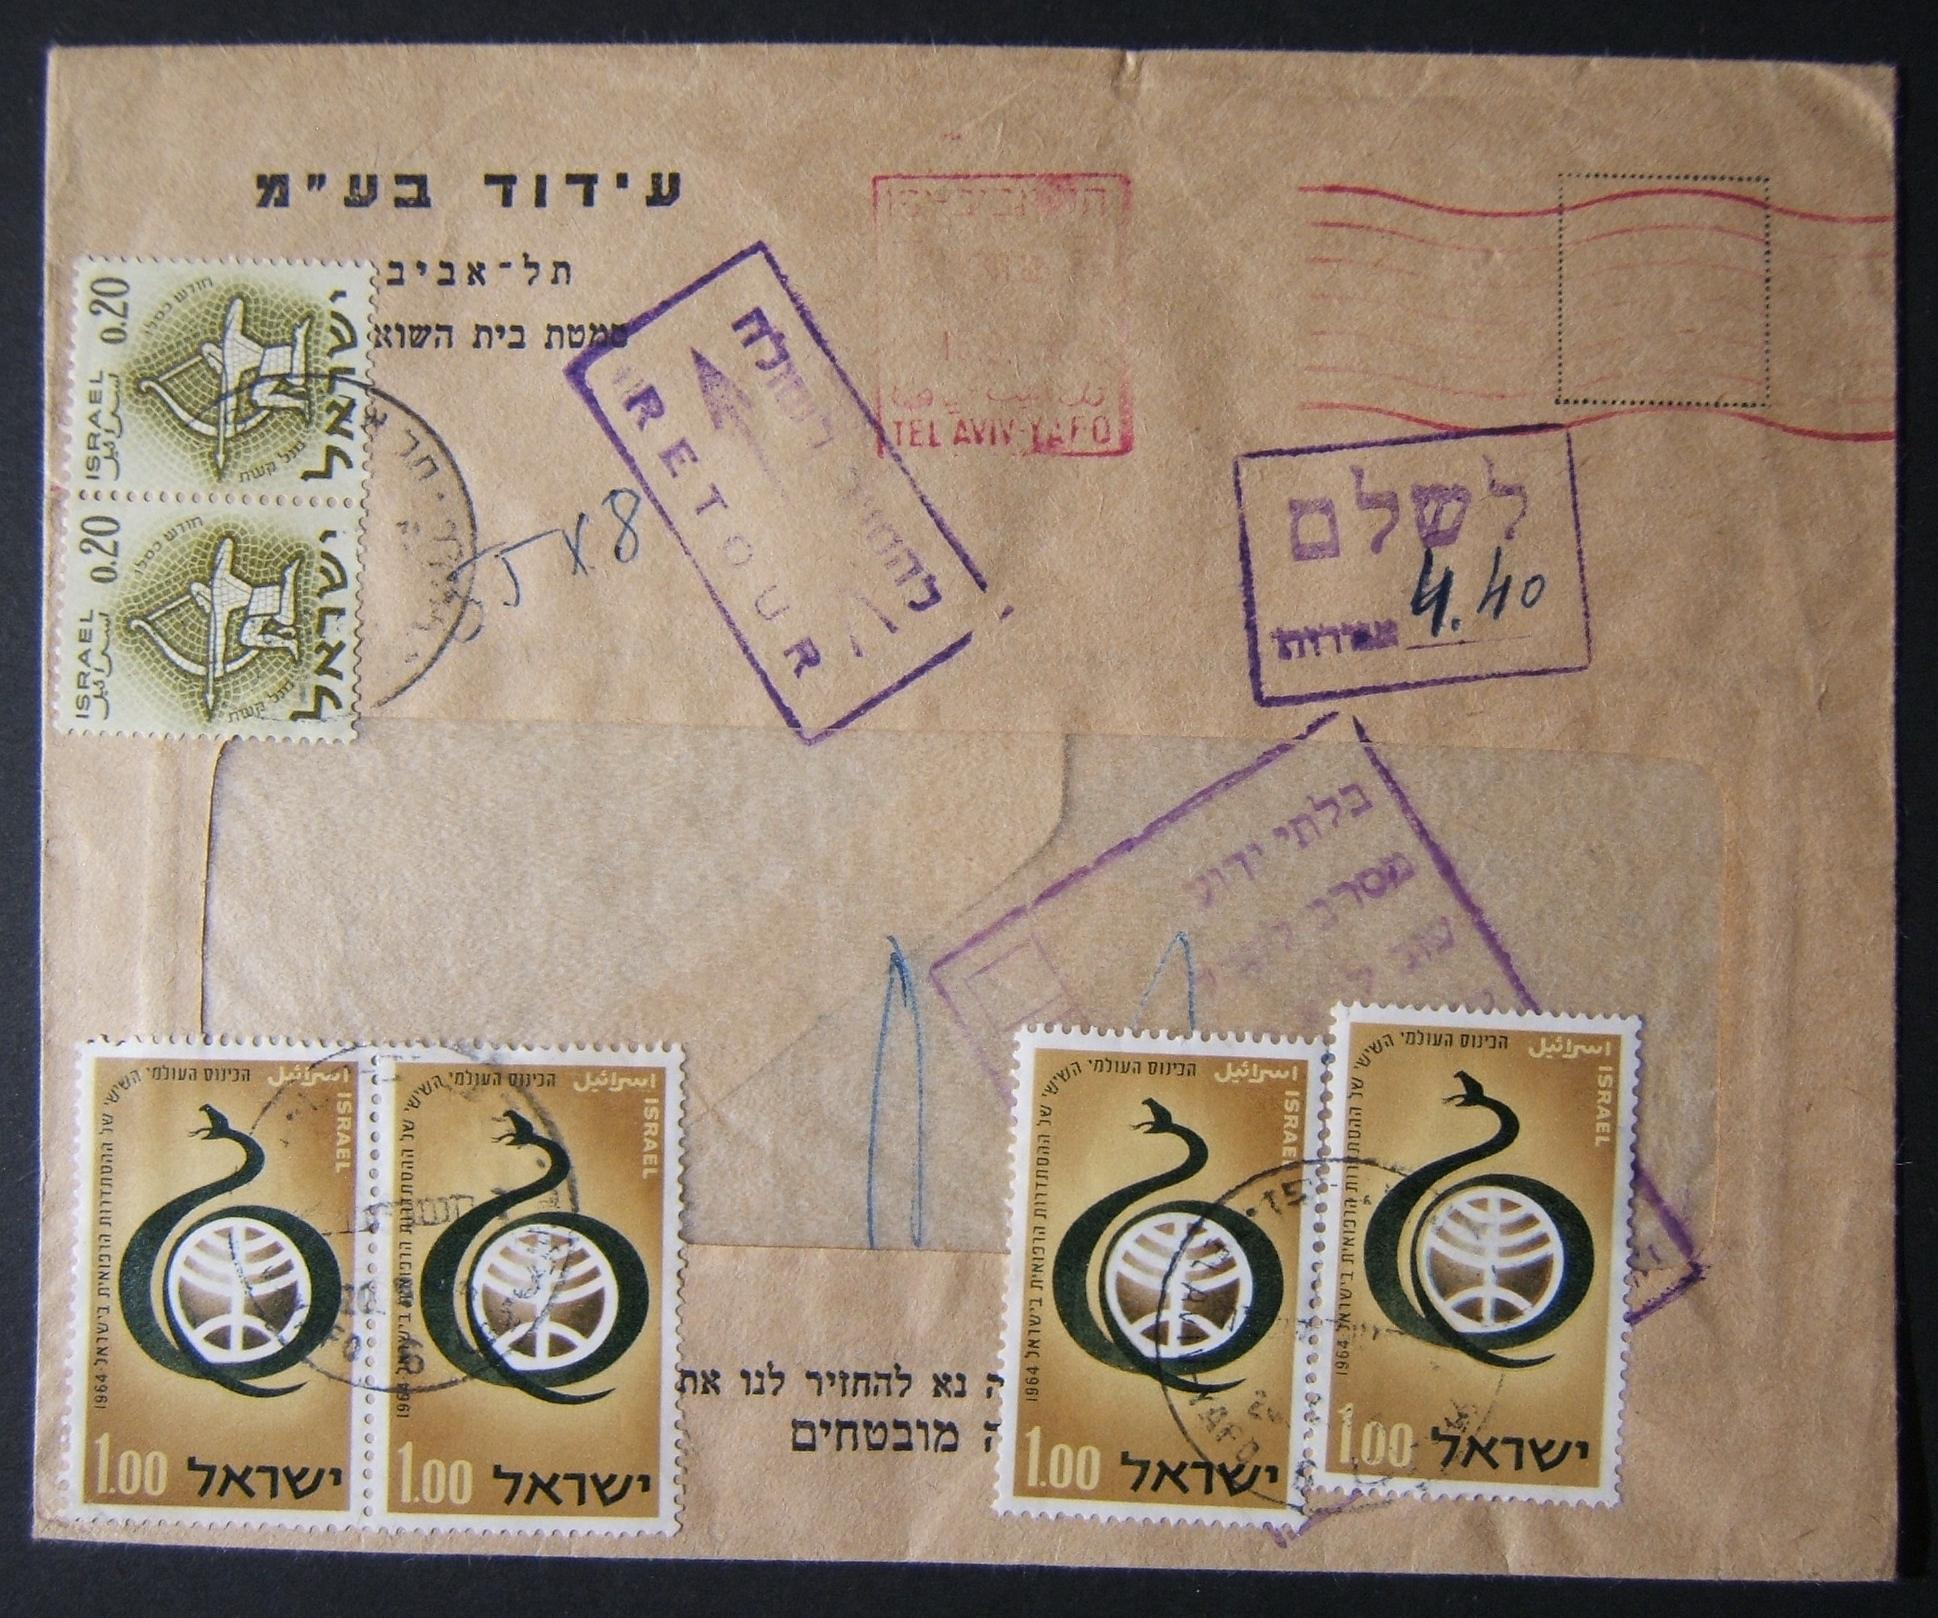 1964 domestic 'top of the pile' taxed franking: 15-9-64 printed matter commercial cover ex TLV branch of Idud Ltd. franked by machine prepayment at the DO-11 period 8 Ag PM rate bu